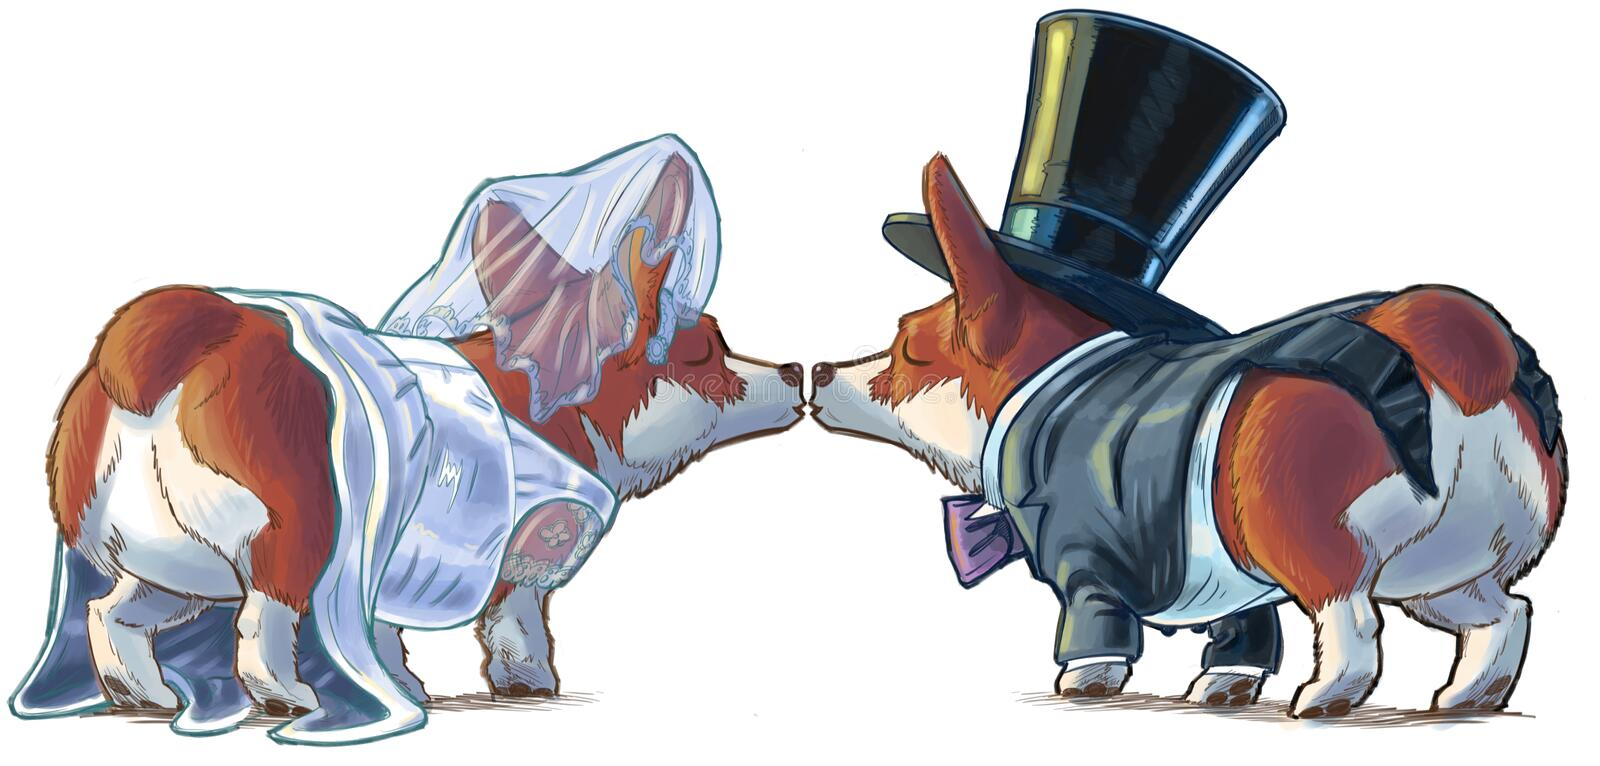 Sposa del Corgi e sposo Kissing Cartoon Illustration illustrazione vettoriale